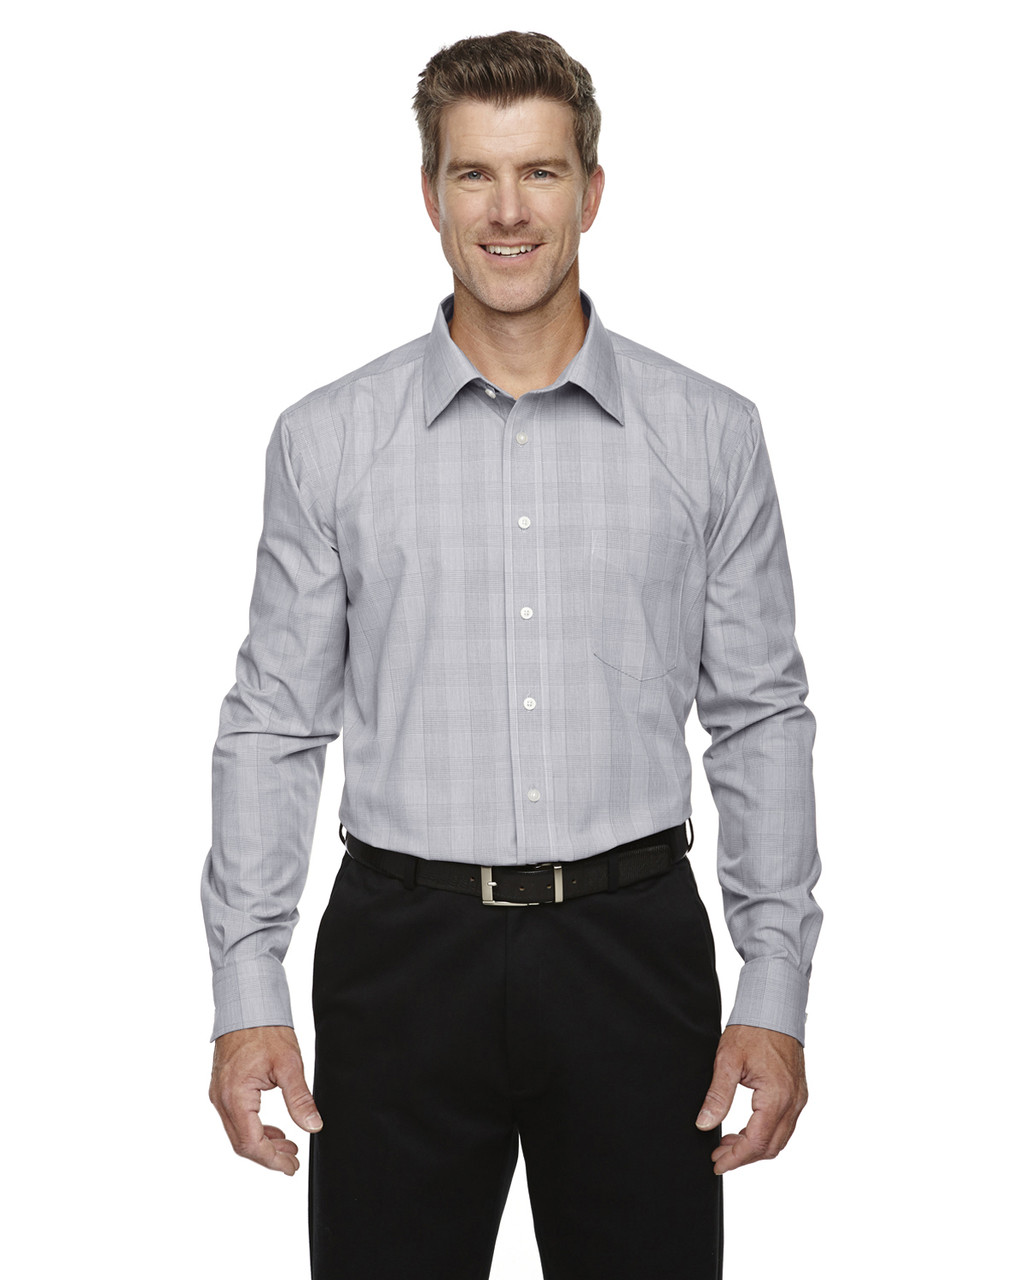 White/Graphite/Light Graphite - DG520 Devon & Jones Glen Plaid Shirt | BlankClothing.ca